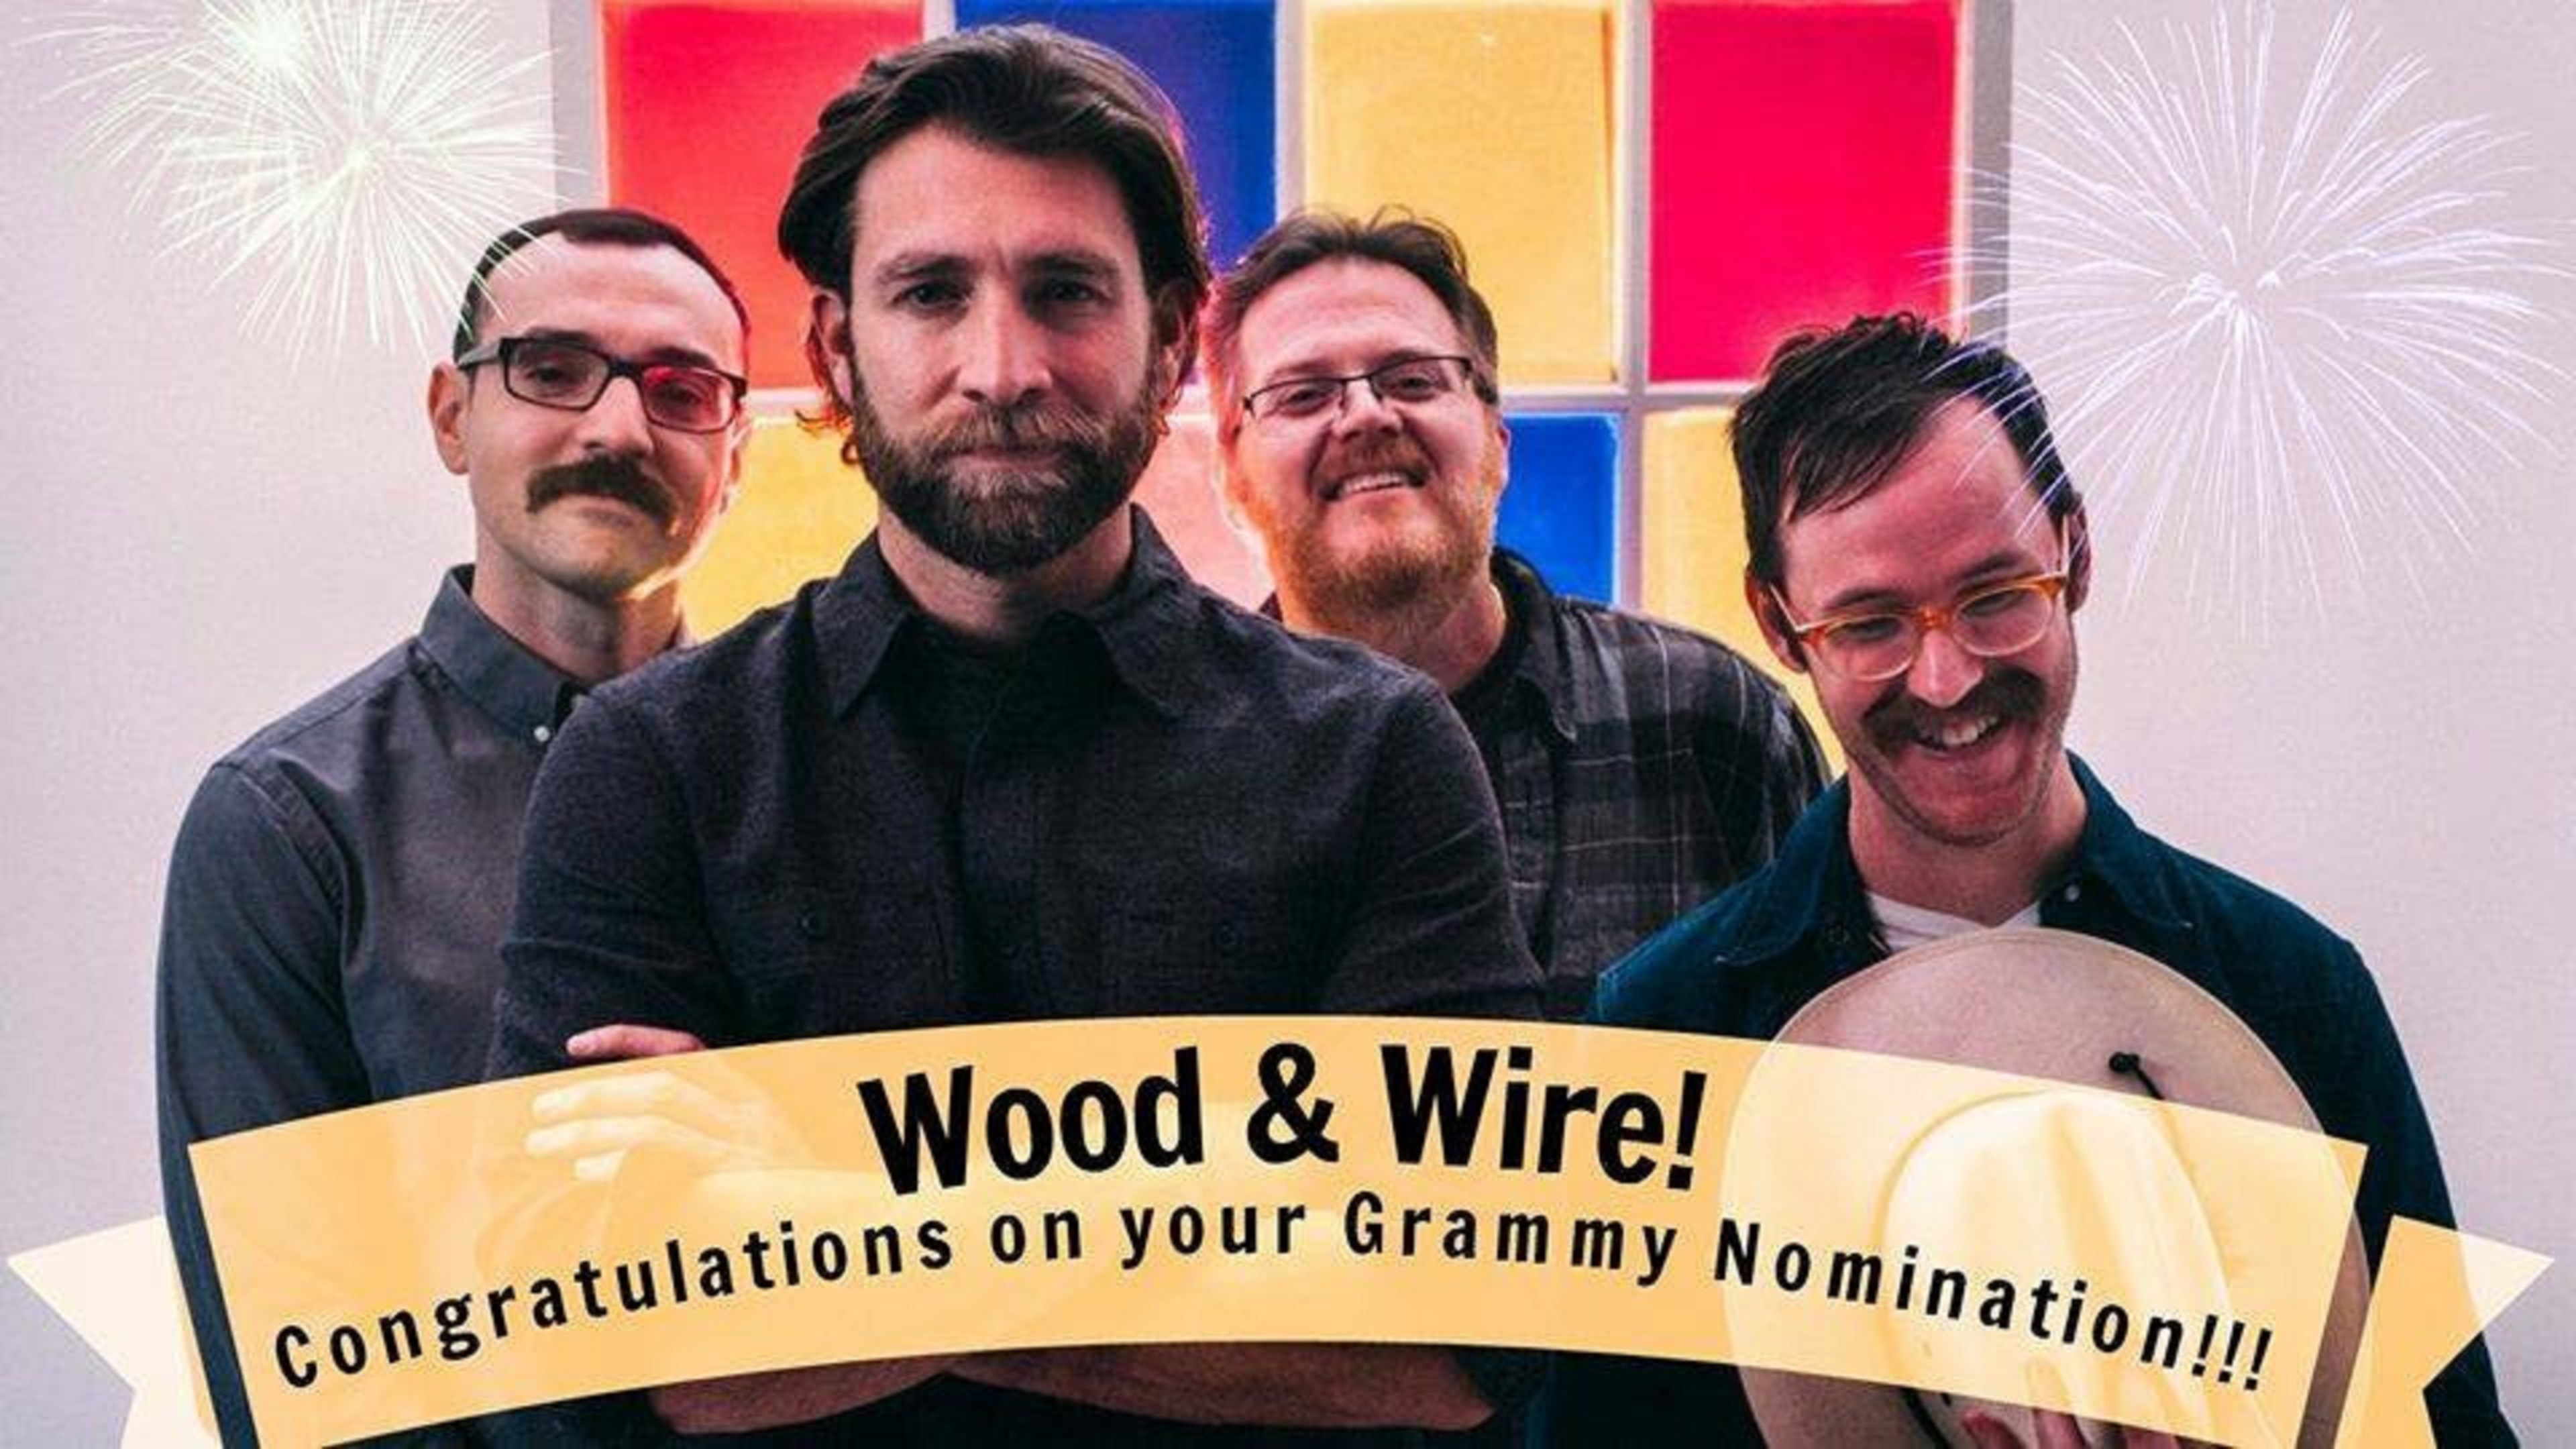 Wood & Wire Grammy Nomination for Best Bluegrass Album